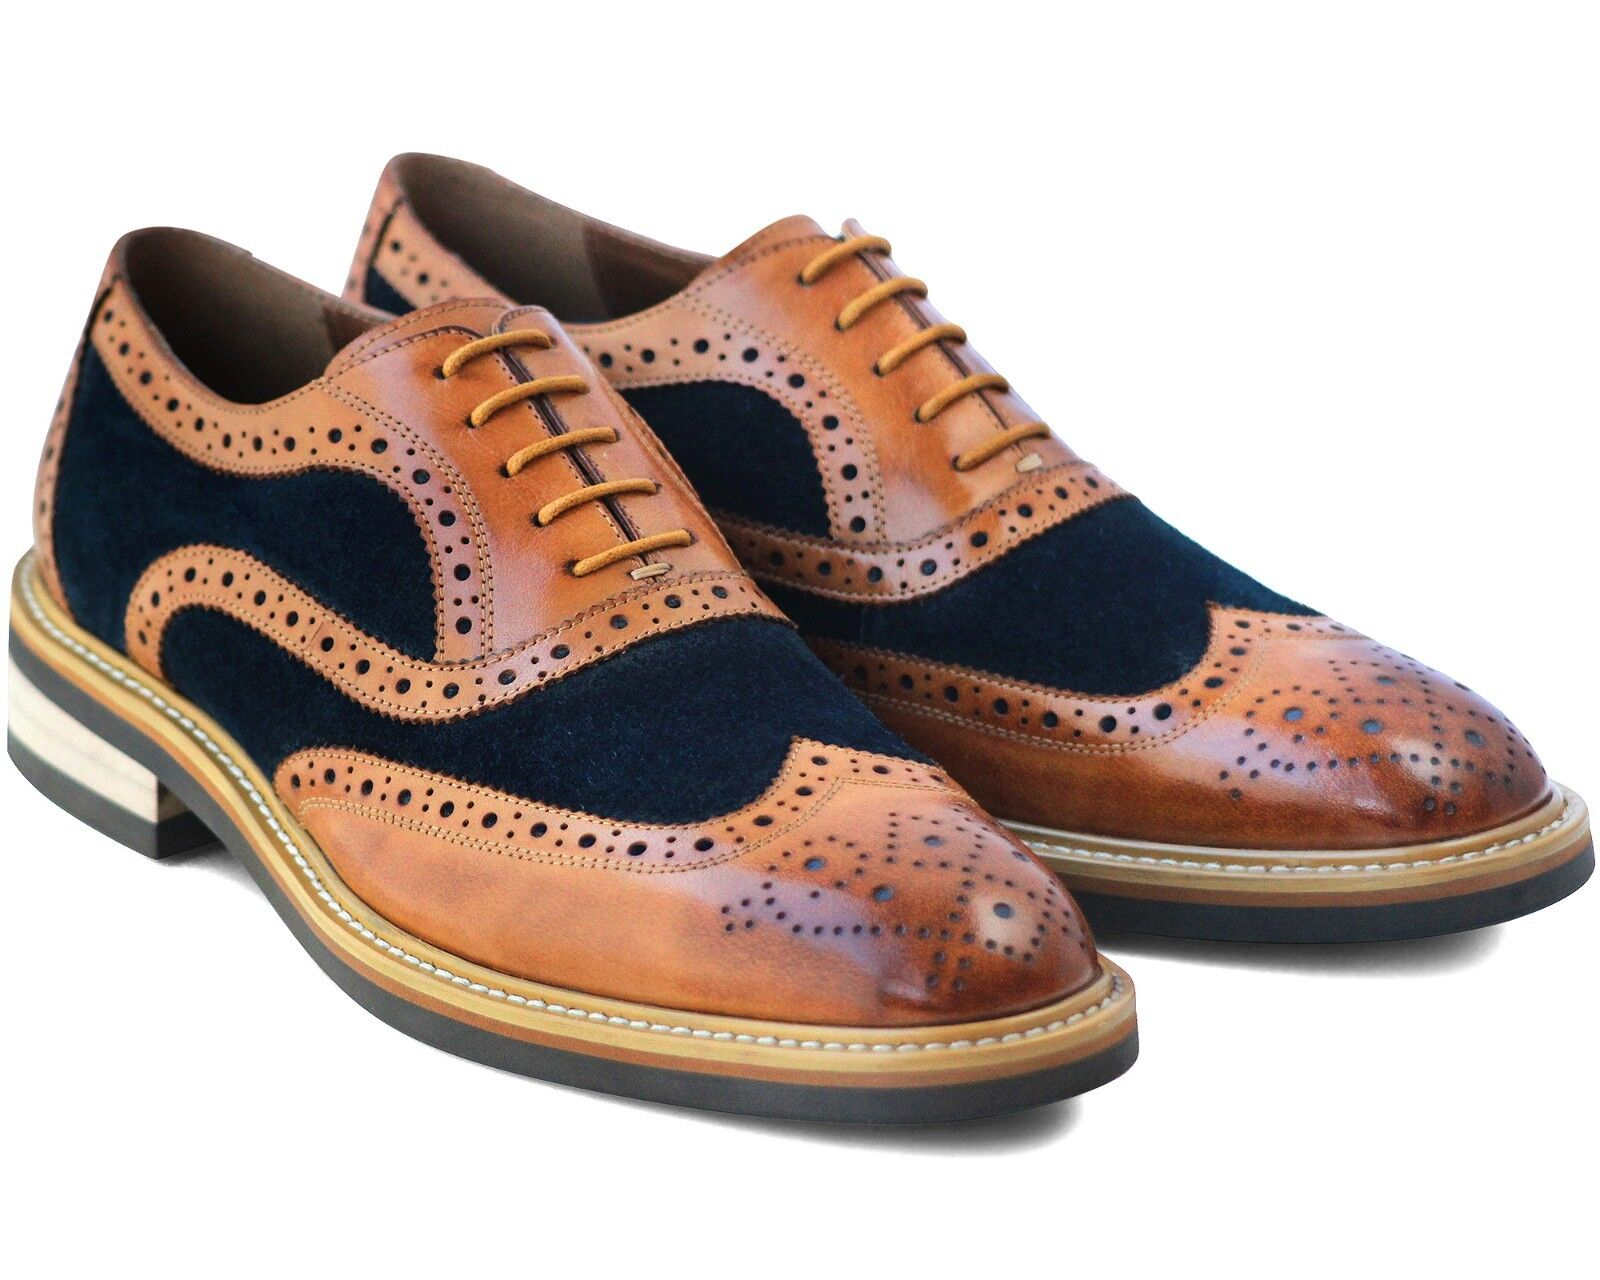 865 NEW MENS BROWN BROGUE SHOES LACE UP REAL LEATHER & NAVY SUEDE